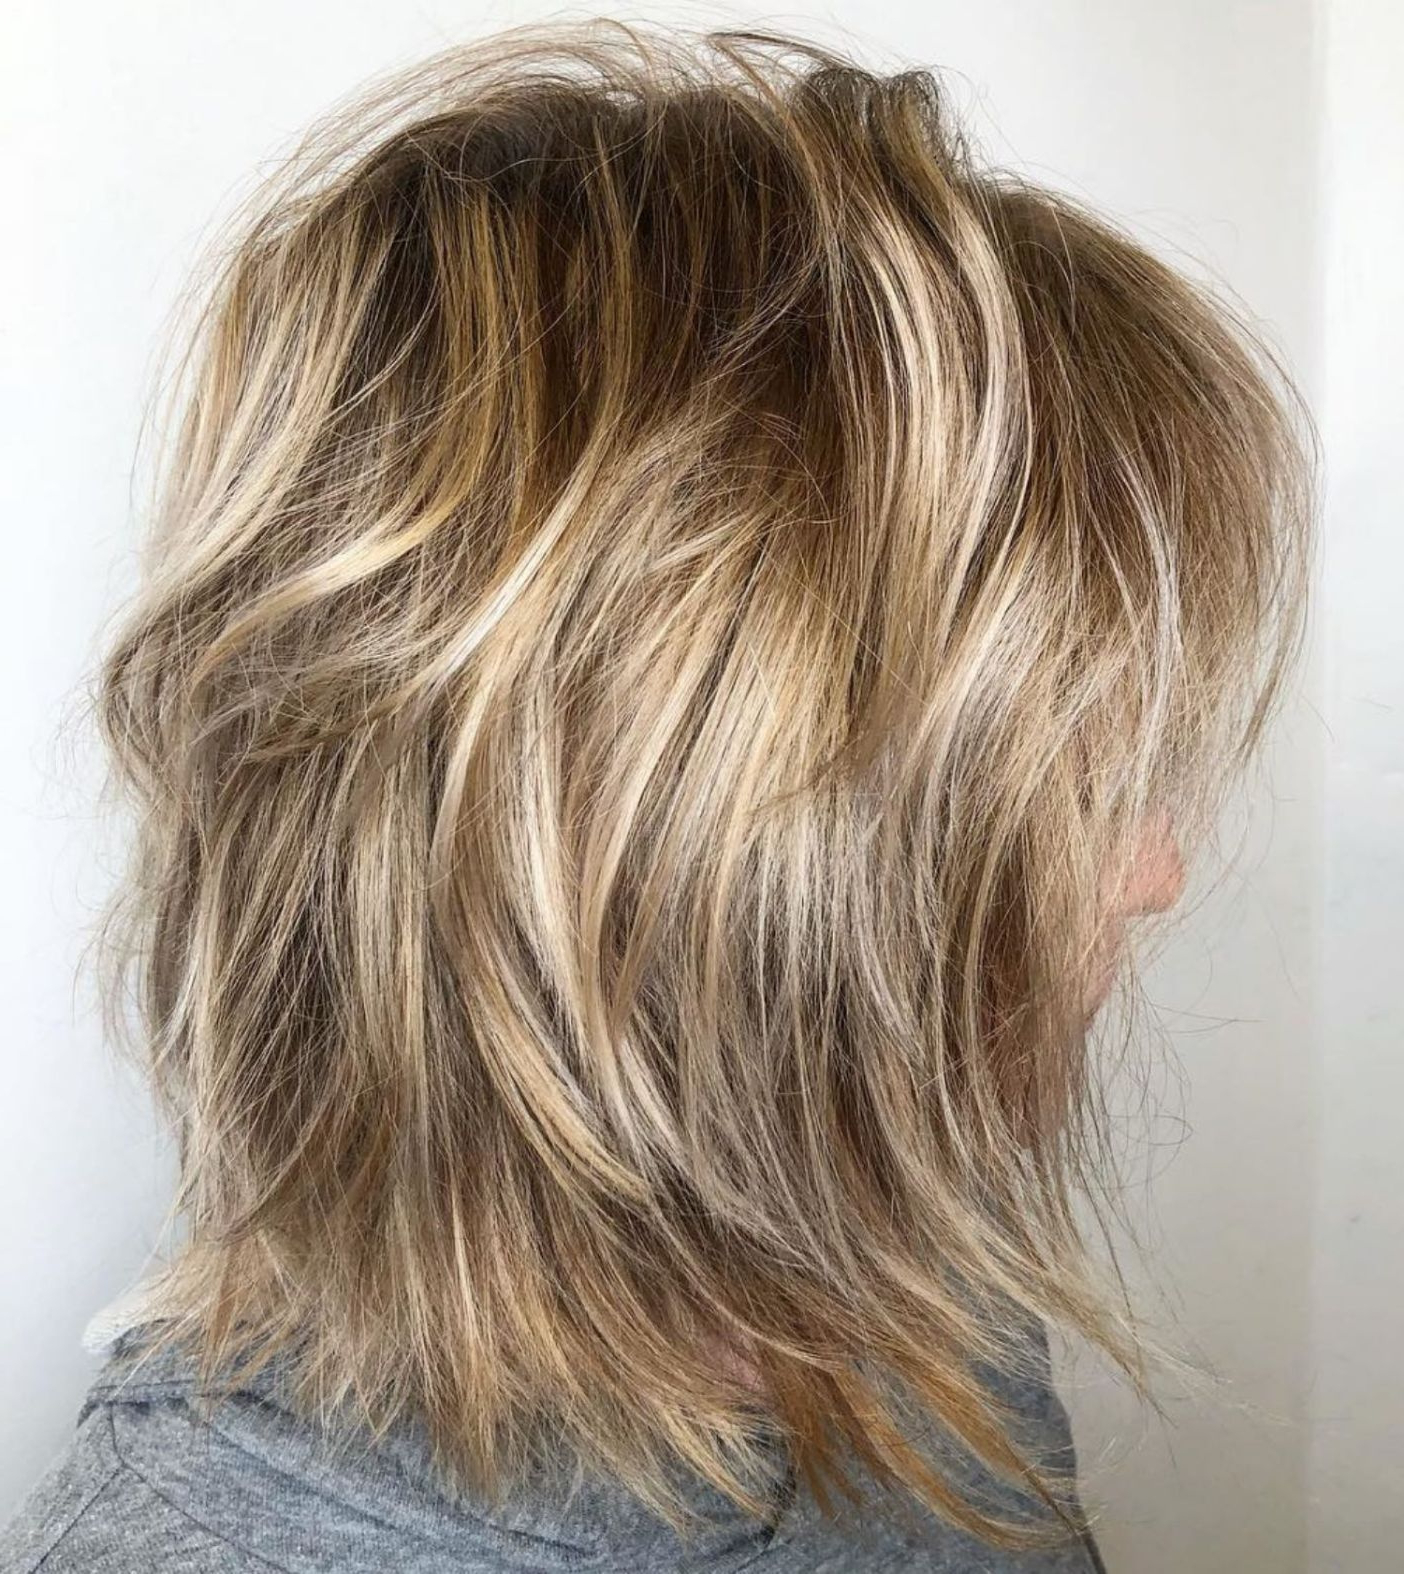 Hairstyles : Shaggy Blonde Bob With Highlights Superb 70 Pertaining To Newest Blonde Shag Haircuts With Layers (View 17 of 20)